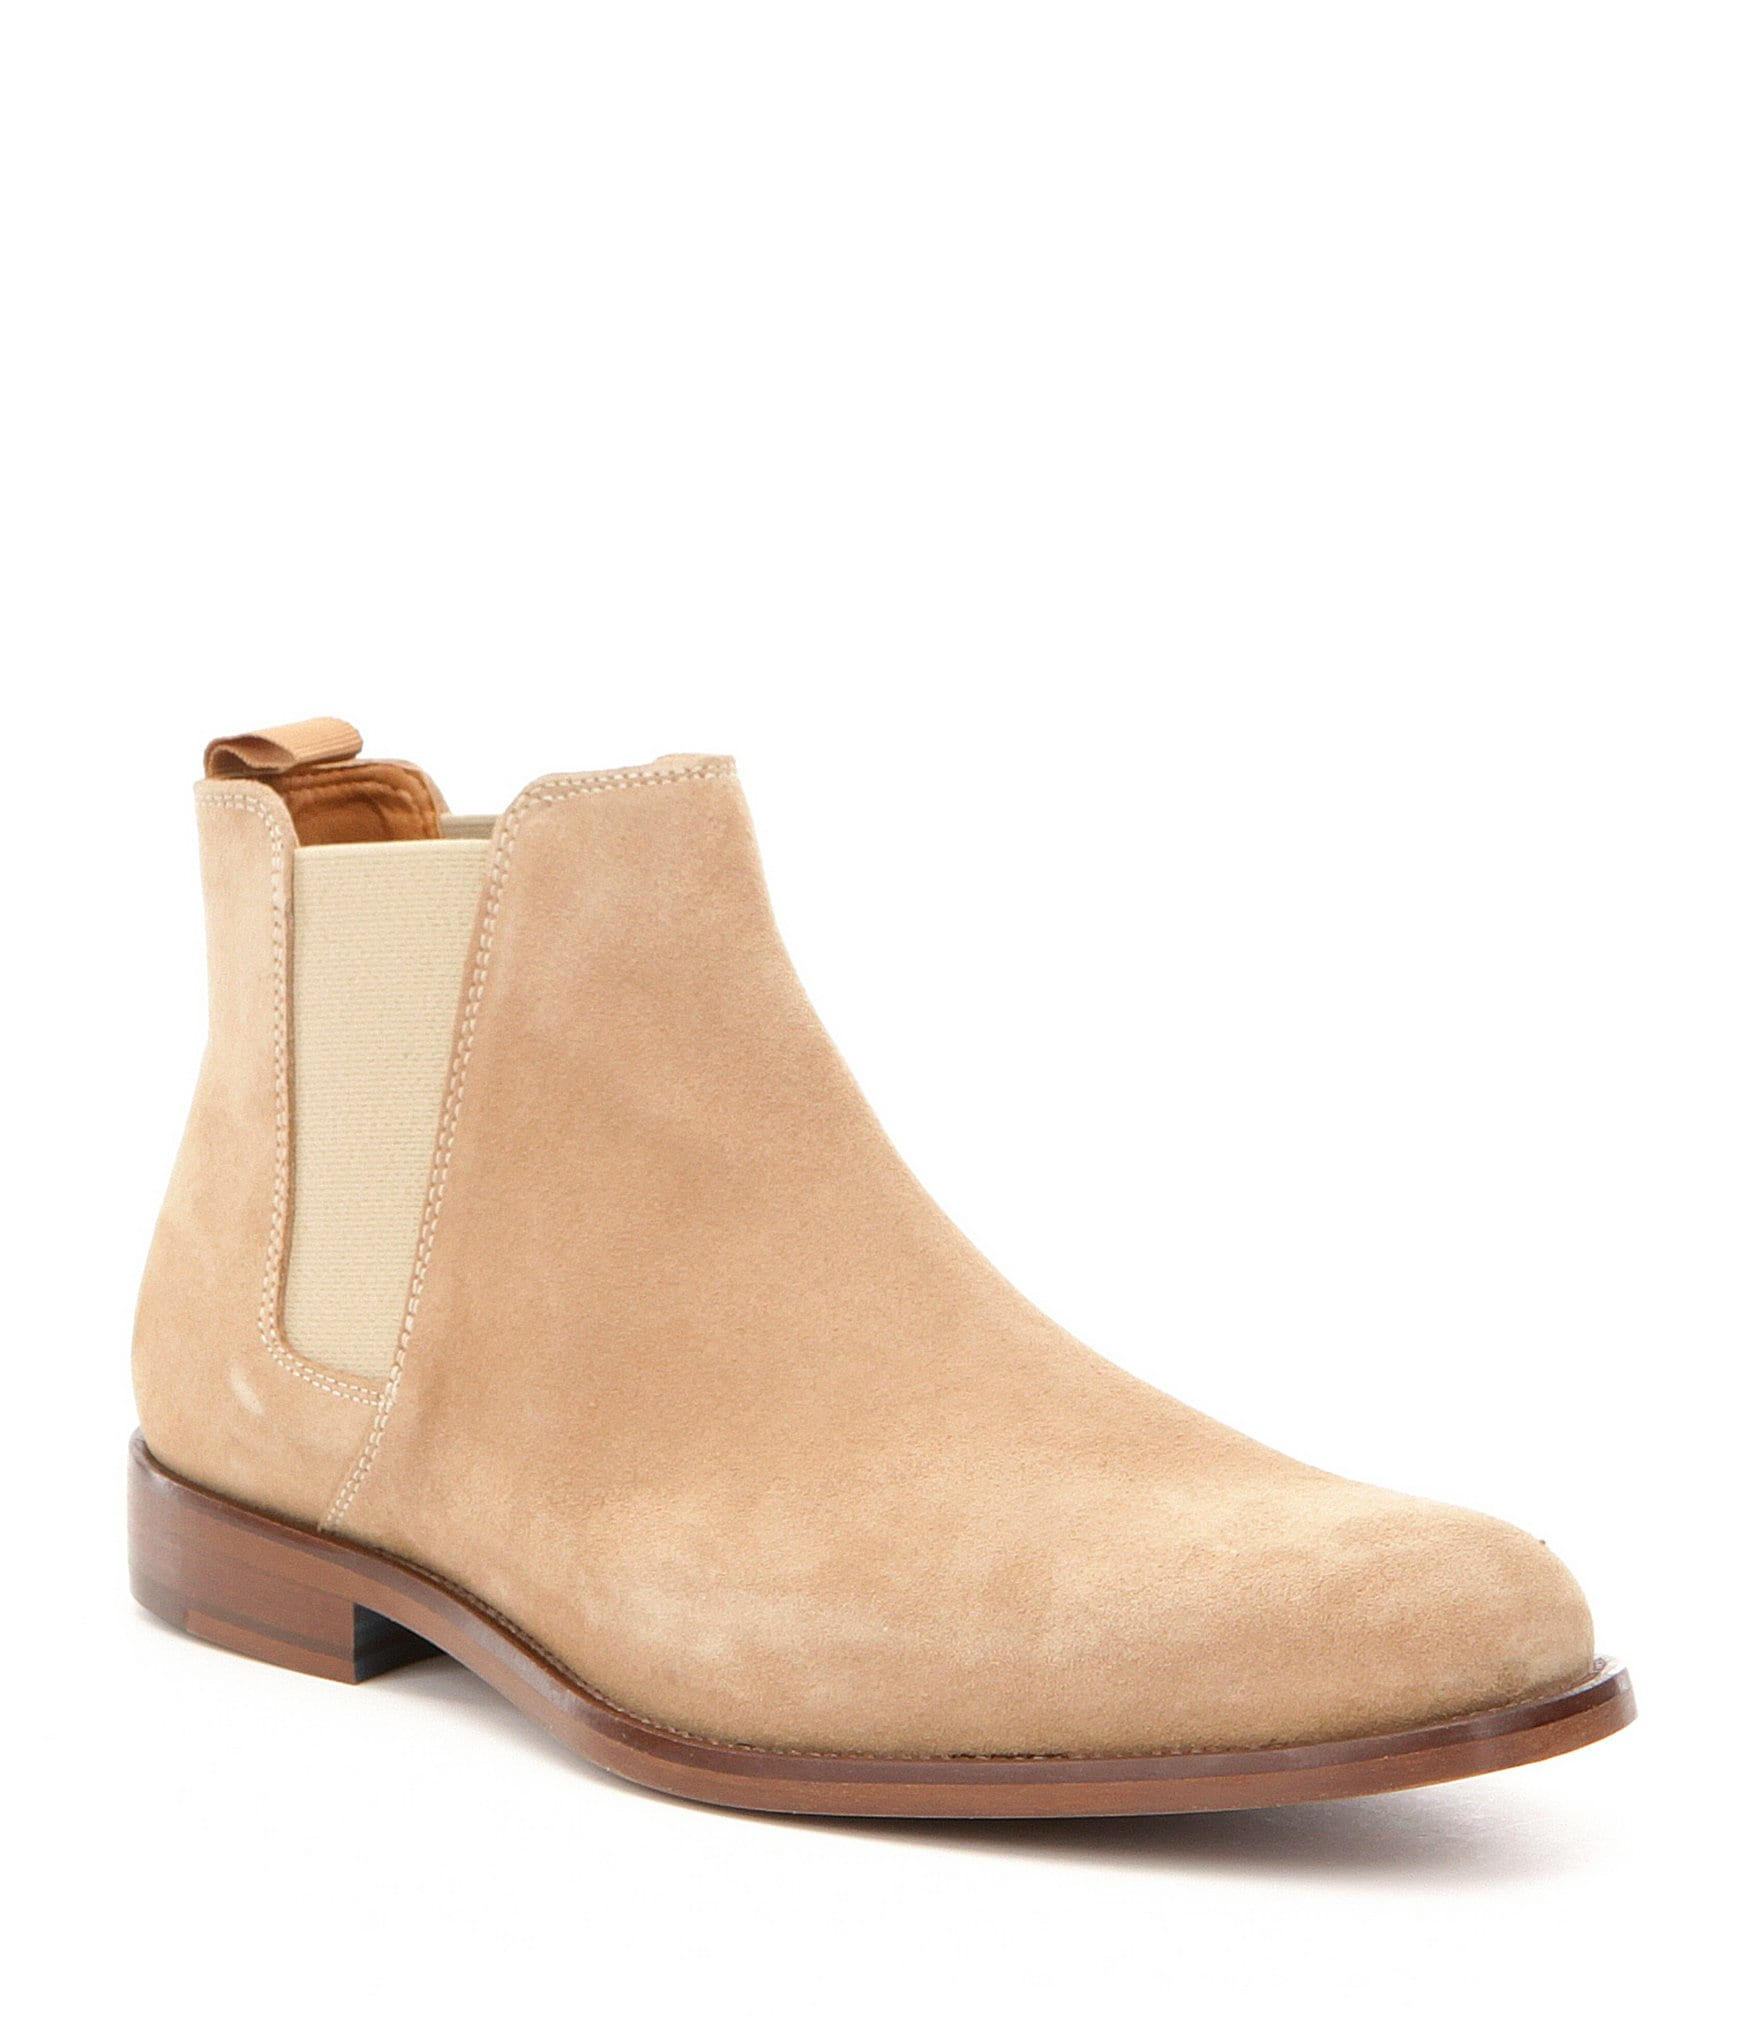 Shoes | Men\'s Shoes | Boots | Dillards.com